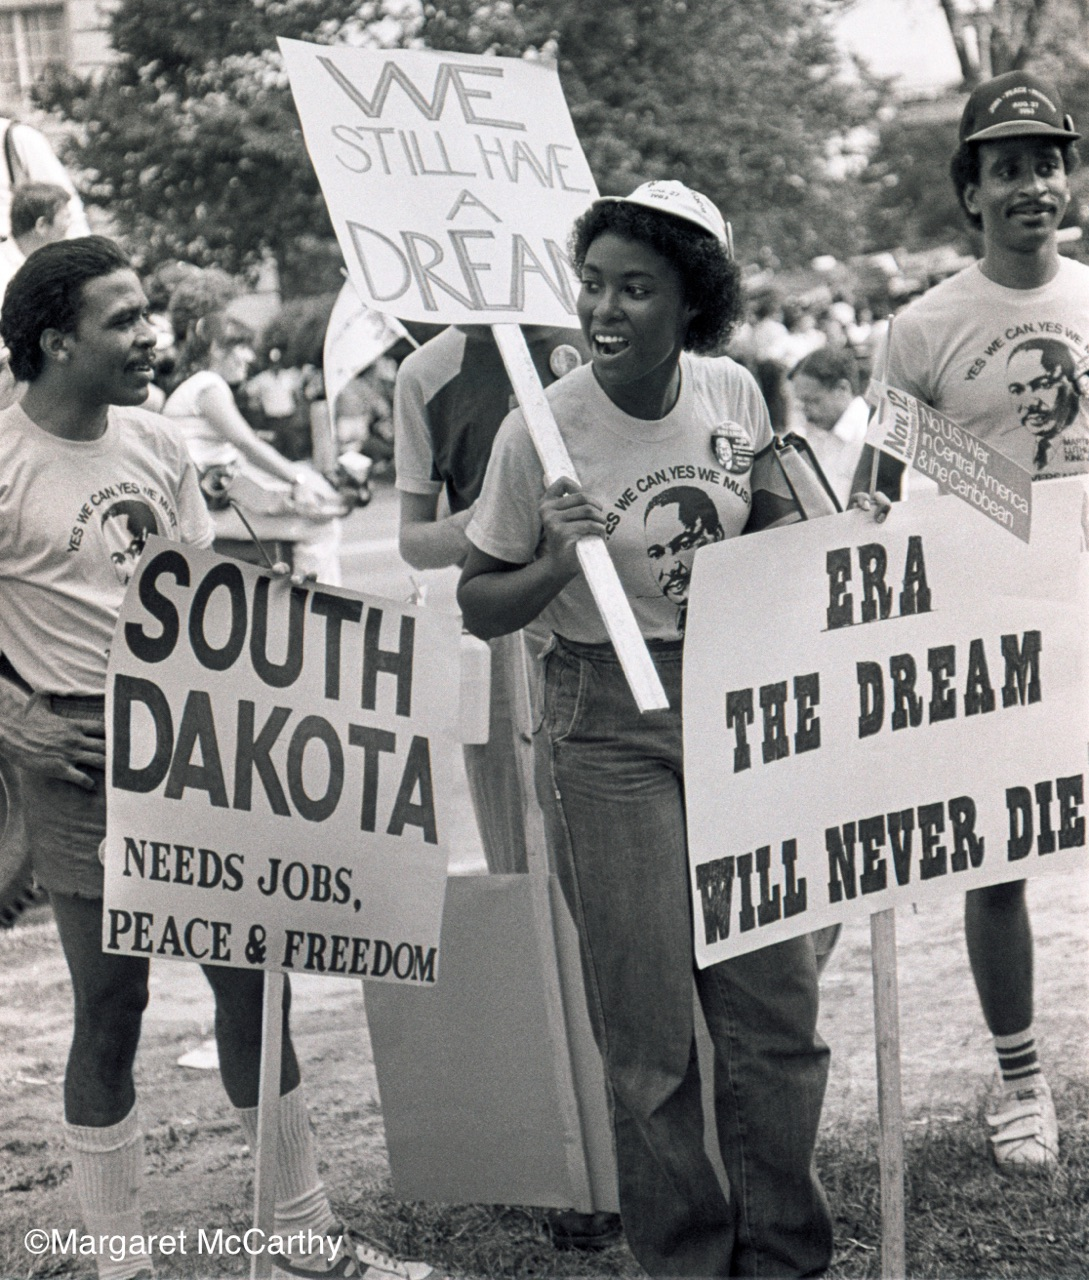 ERA: WE STILL HAVE A DREAM - March for Jobs, Peace, Justice; Washington, D.C. 1983